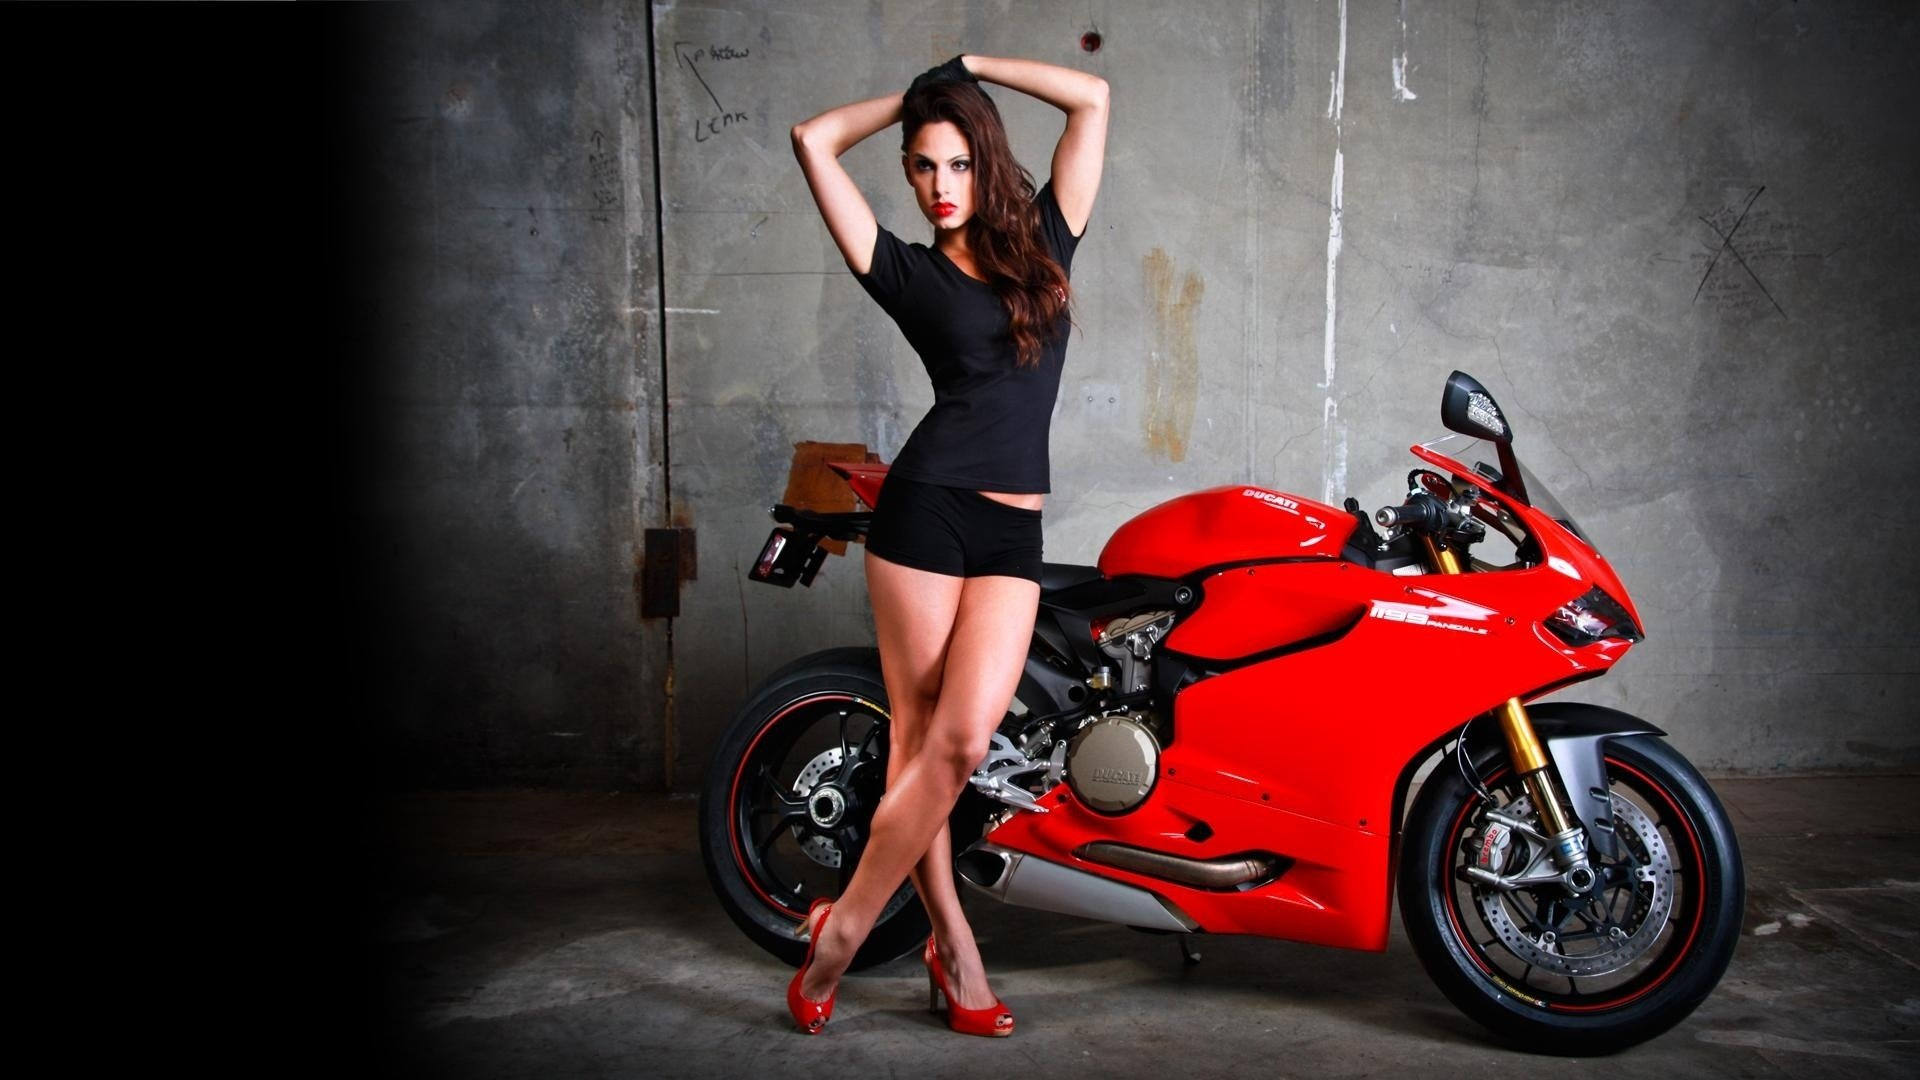 37 ducati hd wallpapers | backgrounds - wallpaper abyss